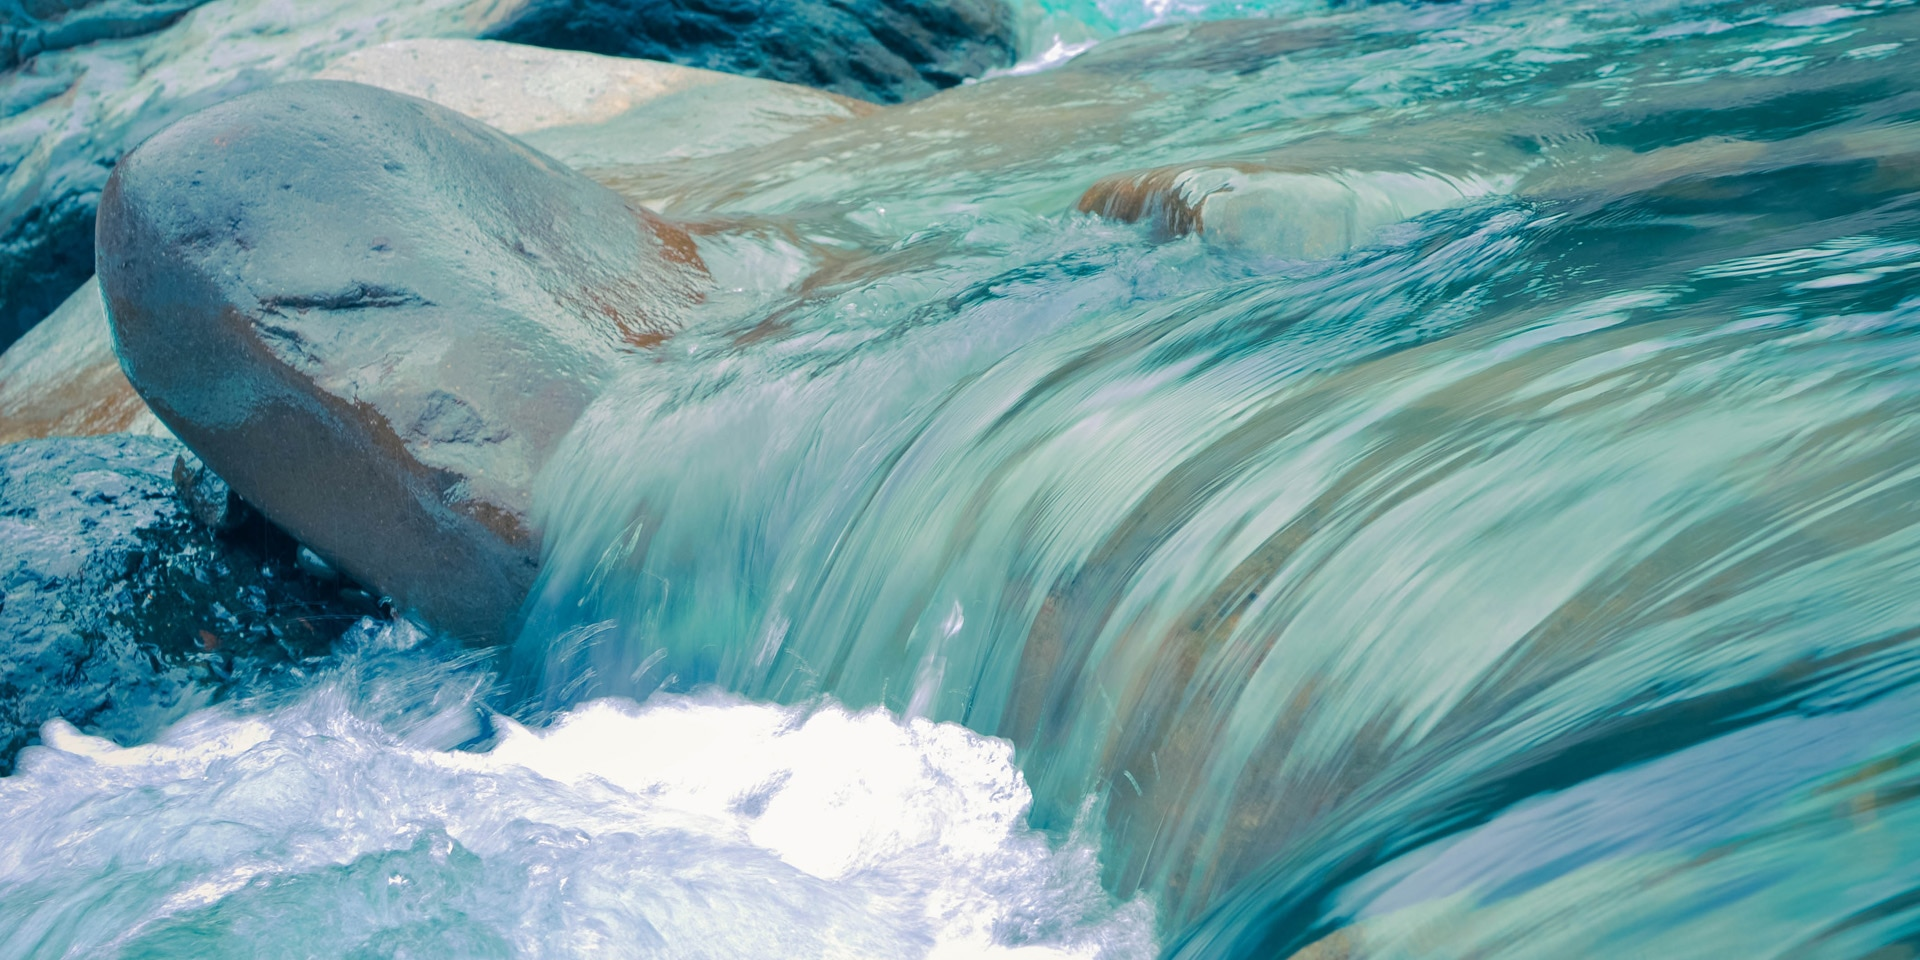 The blue water of a stream ripples over stony terrain.